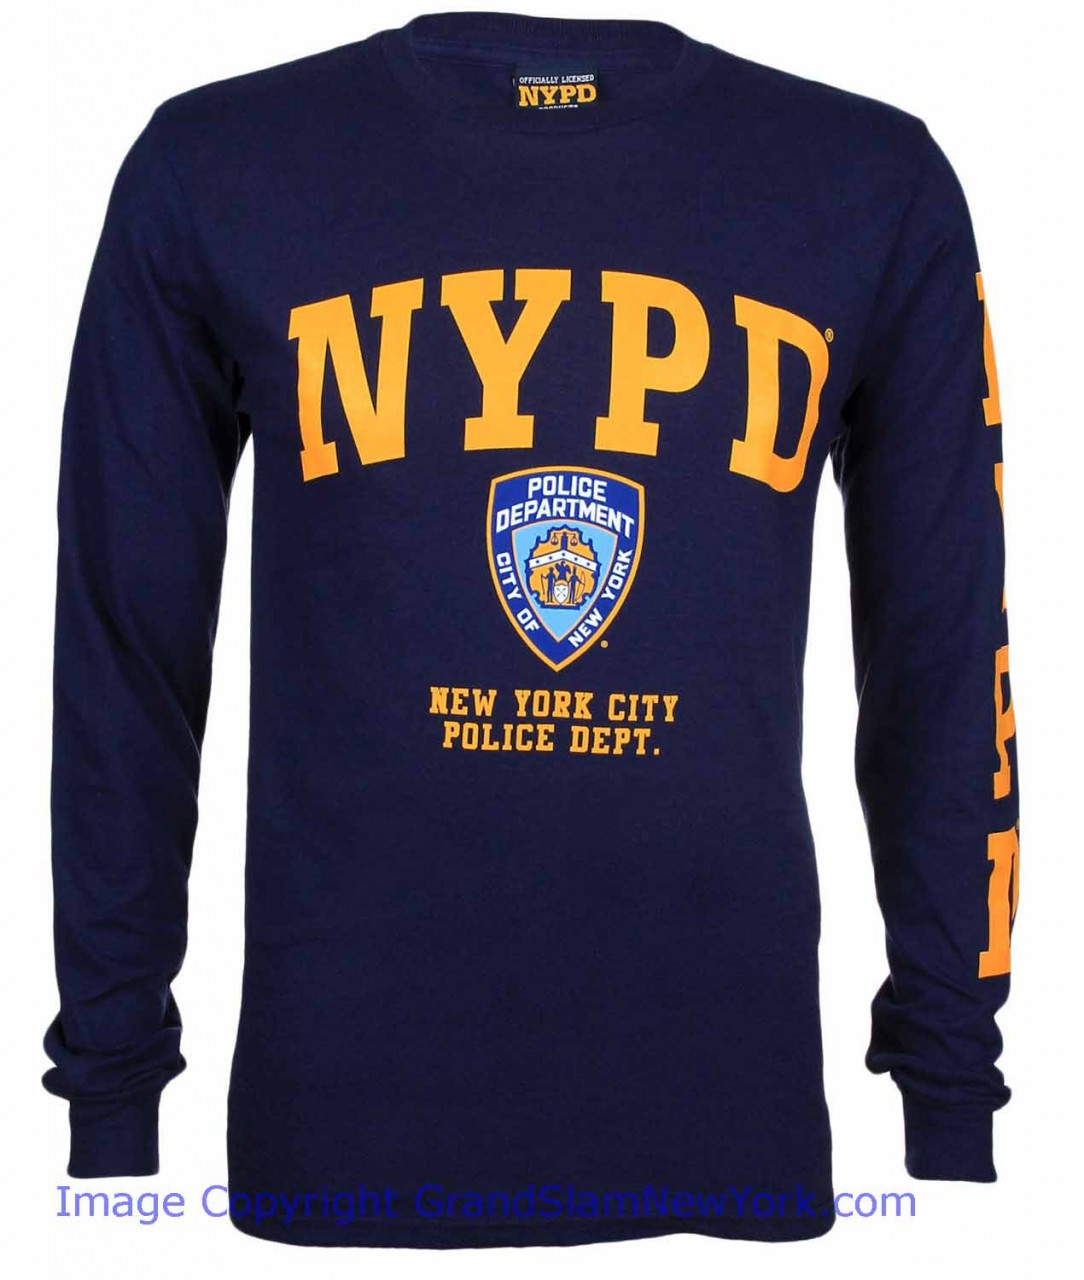 602bc9bc2 NYPD Full Chest and Sleeve Navy LS Tee - front Photo. Loading zoom